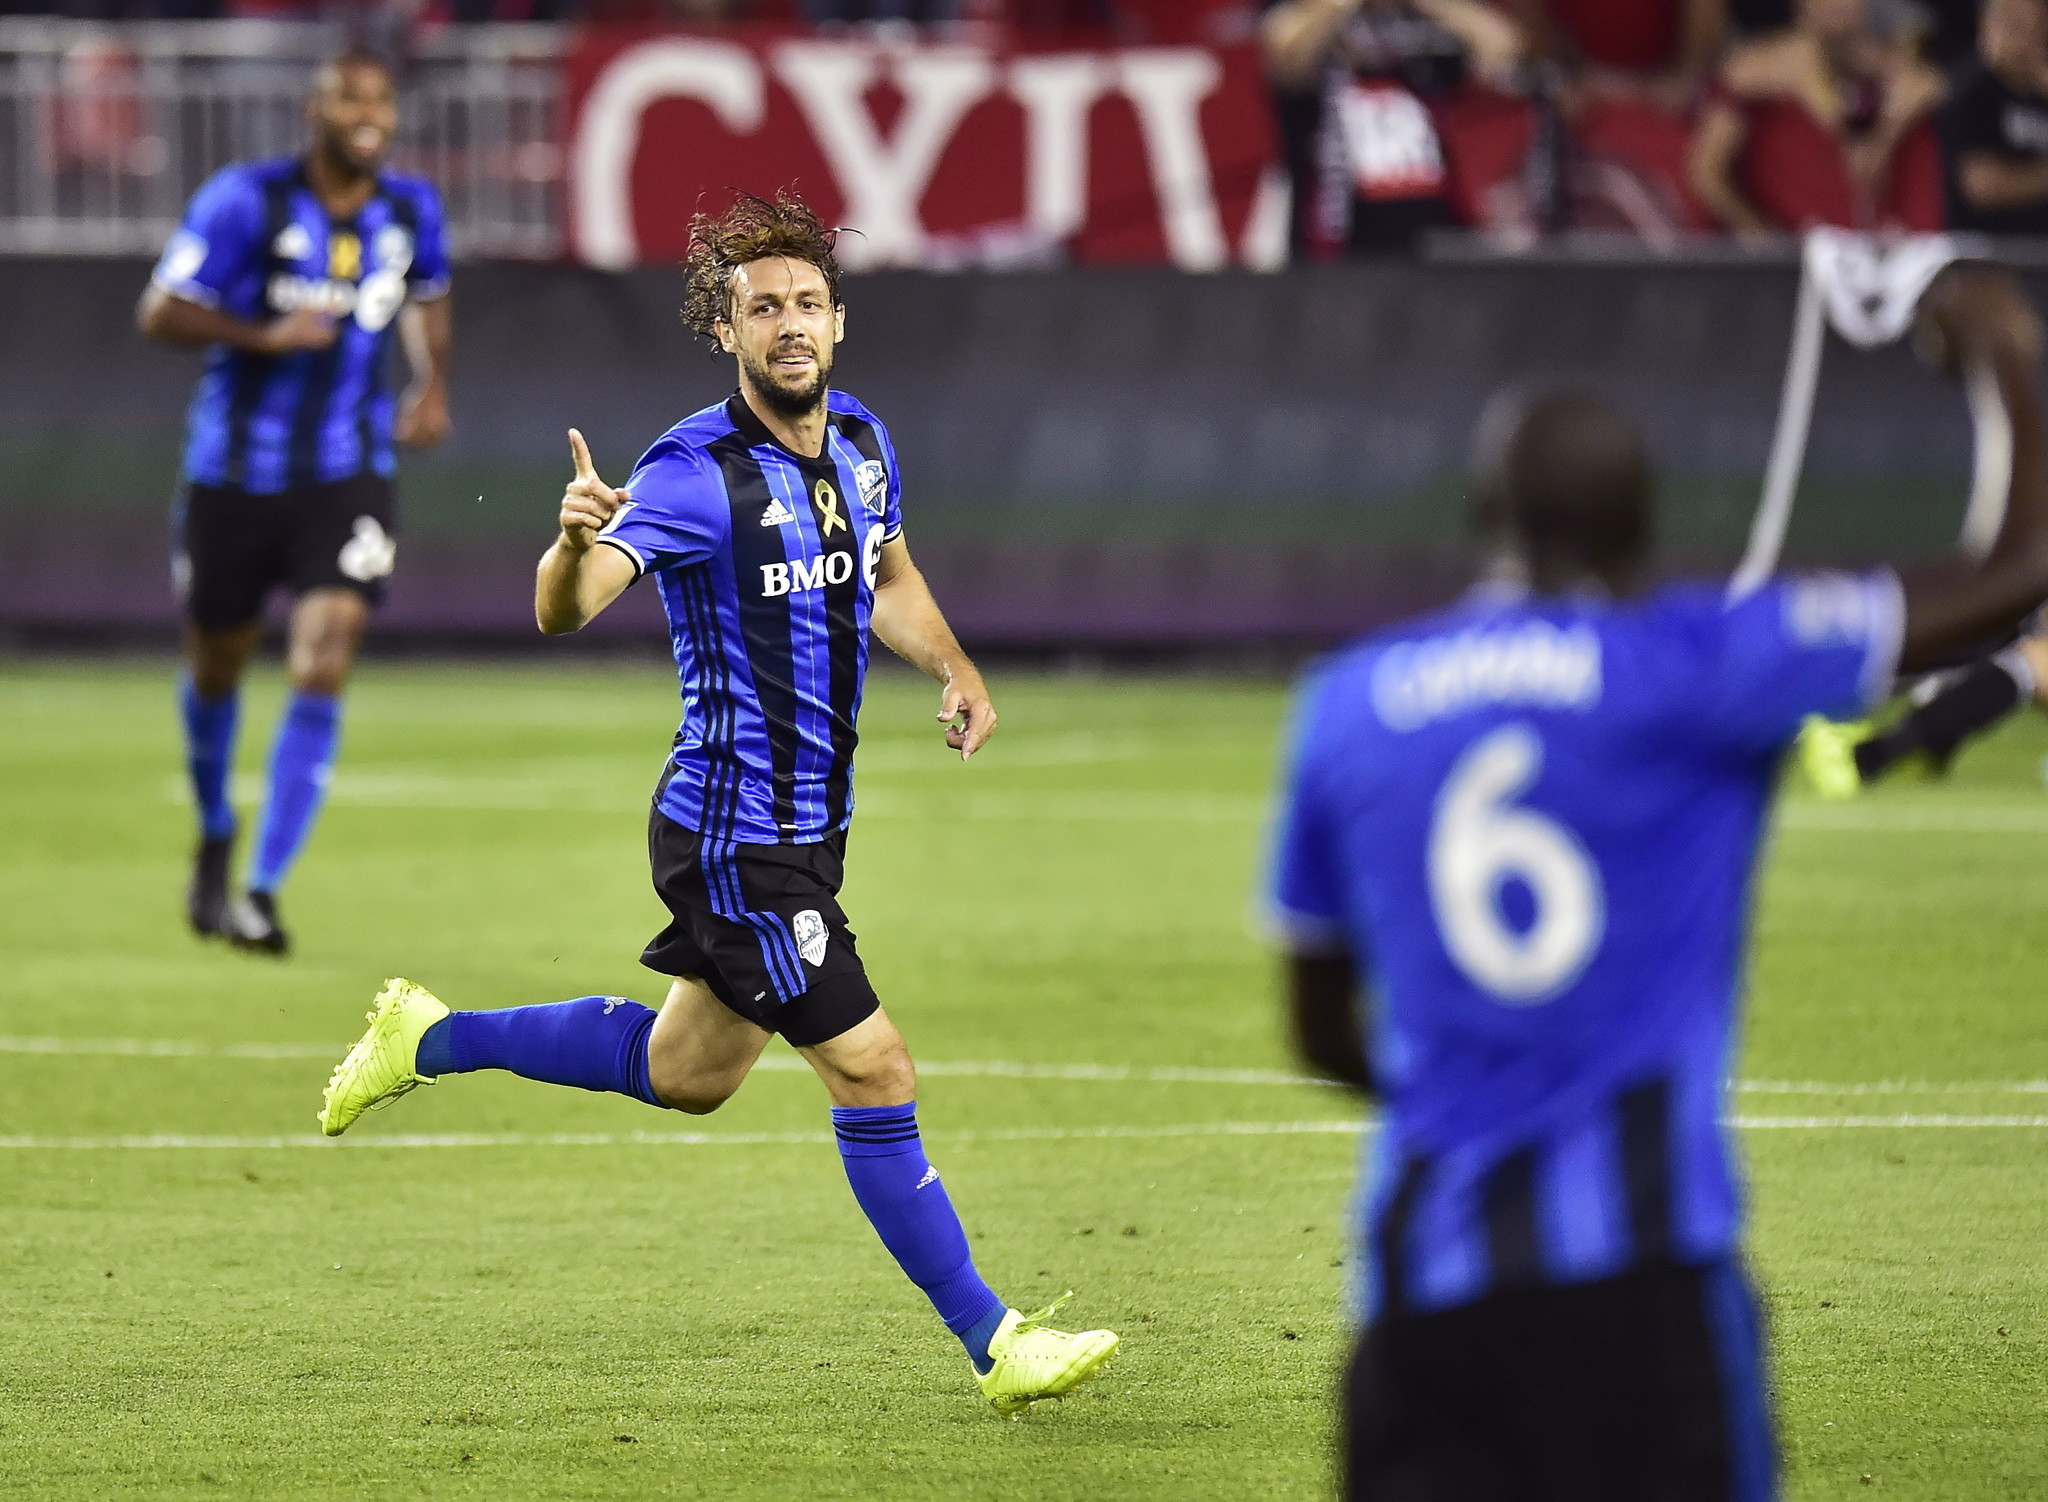 Ct-hoy-impact-cools-off-toronto-fc-with-5-3-win-20170921